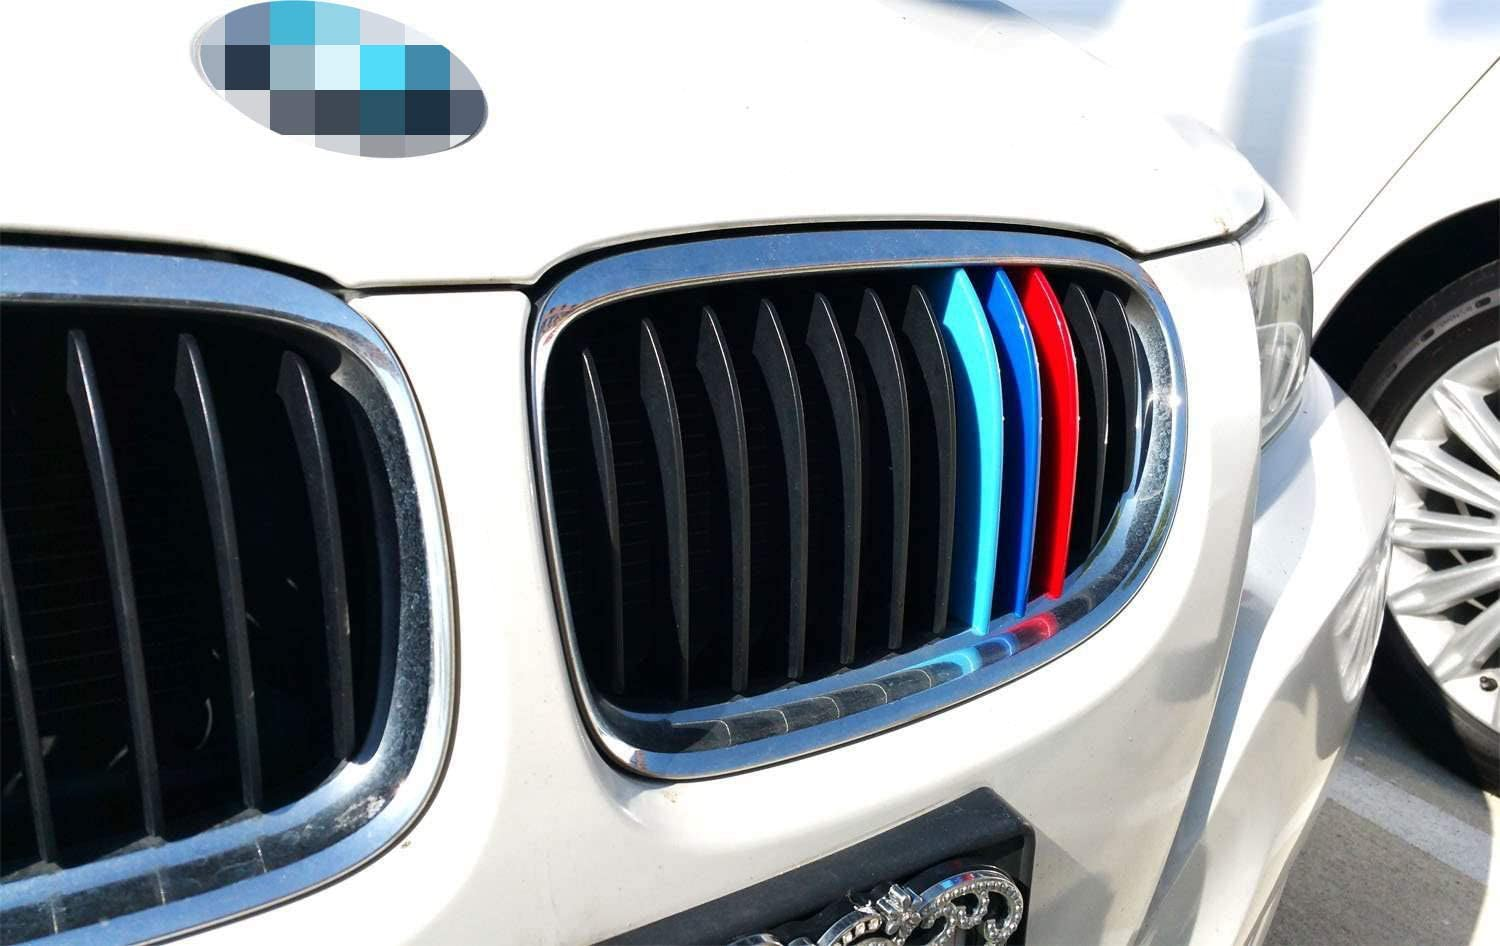 Does Not Fit X6M iJDMTOY //////M-Colored Grille Insert Trims For 2017-2018 BMW F16 X6 with 7 Standard Grille Beams